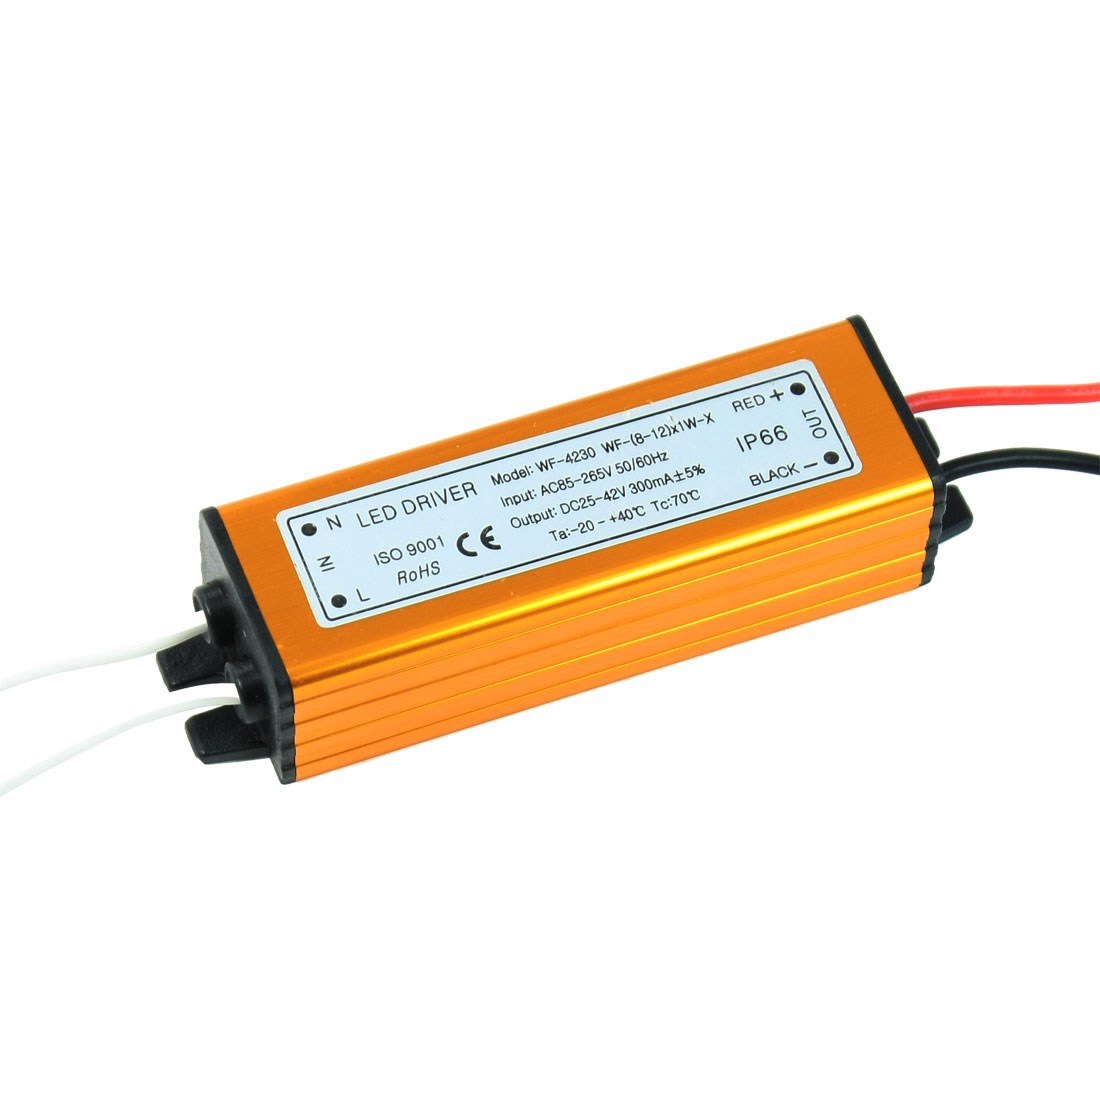 AC 180-265V Waterproof Constant Current Driver Power Supply for (8-12)x1W LED